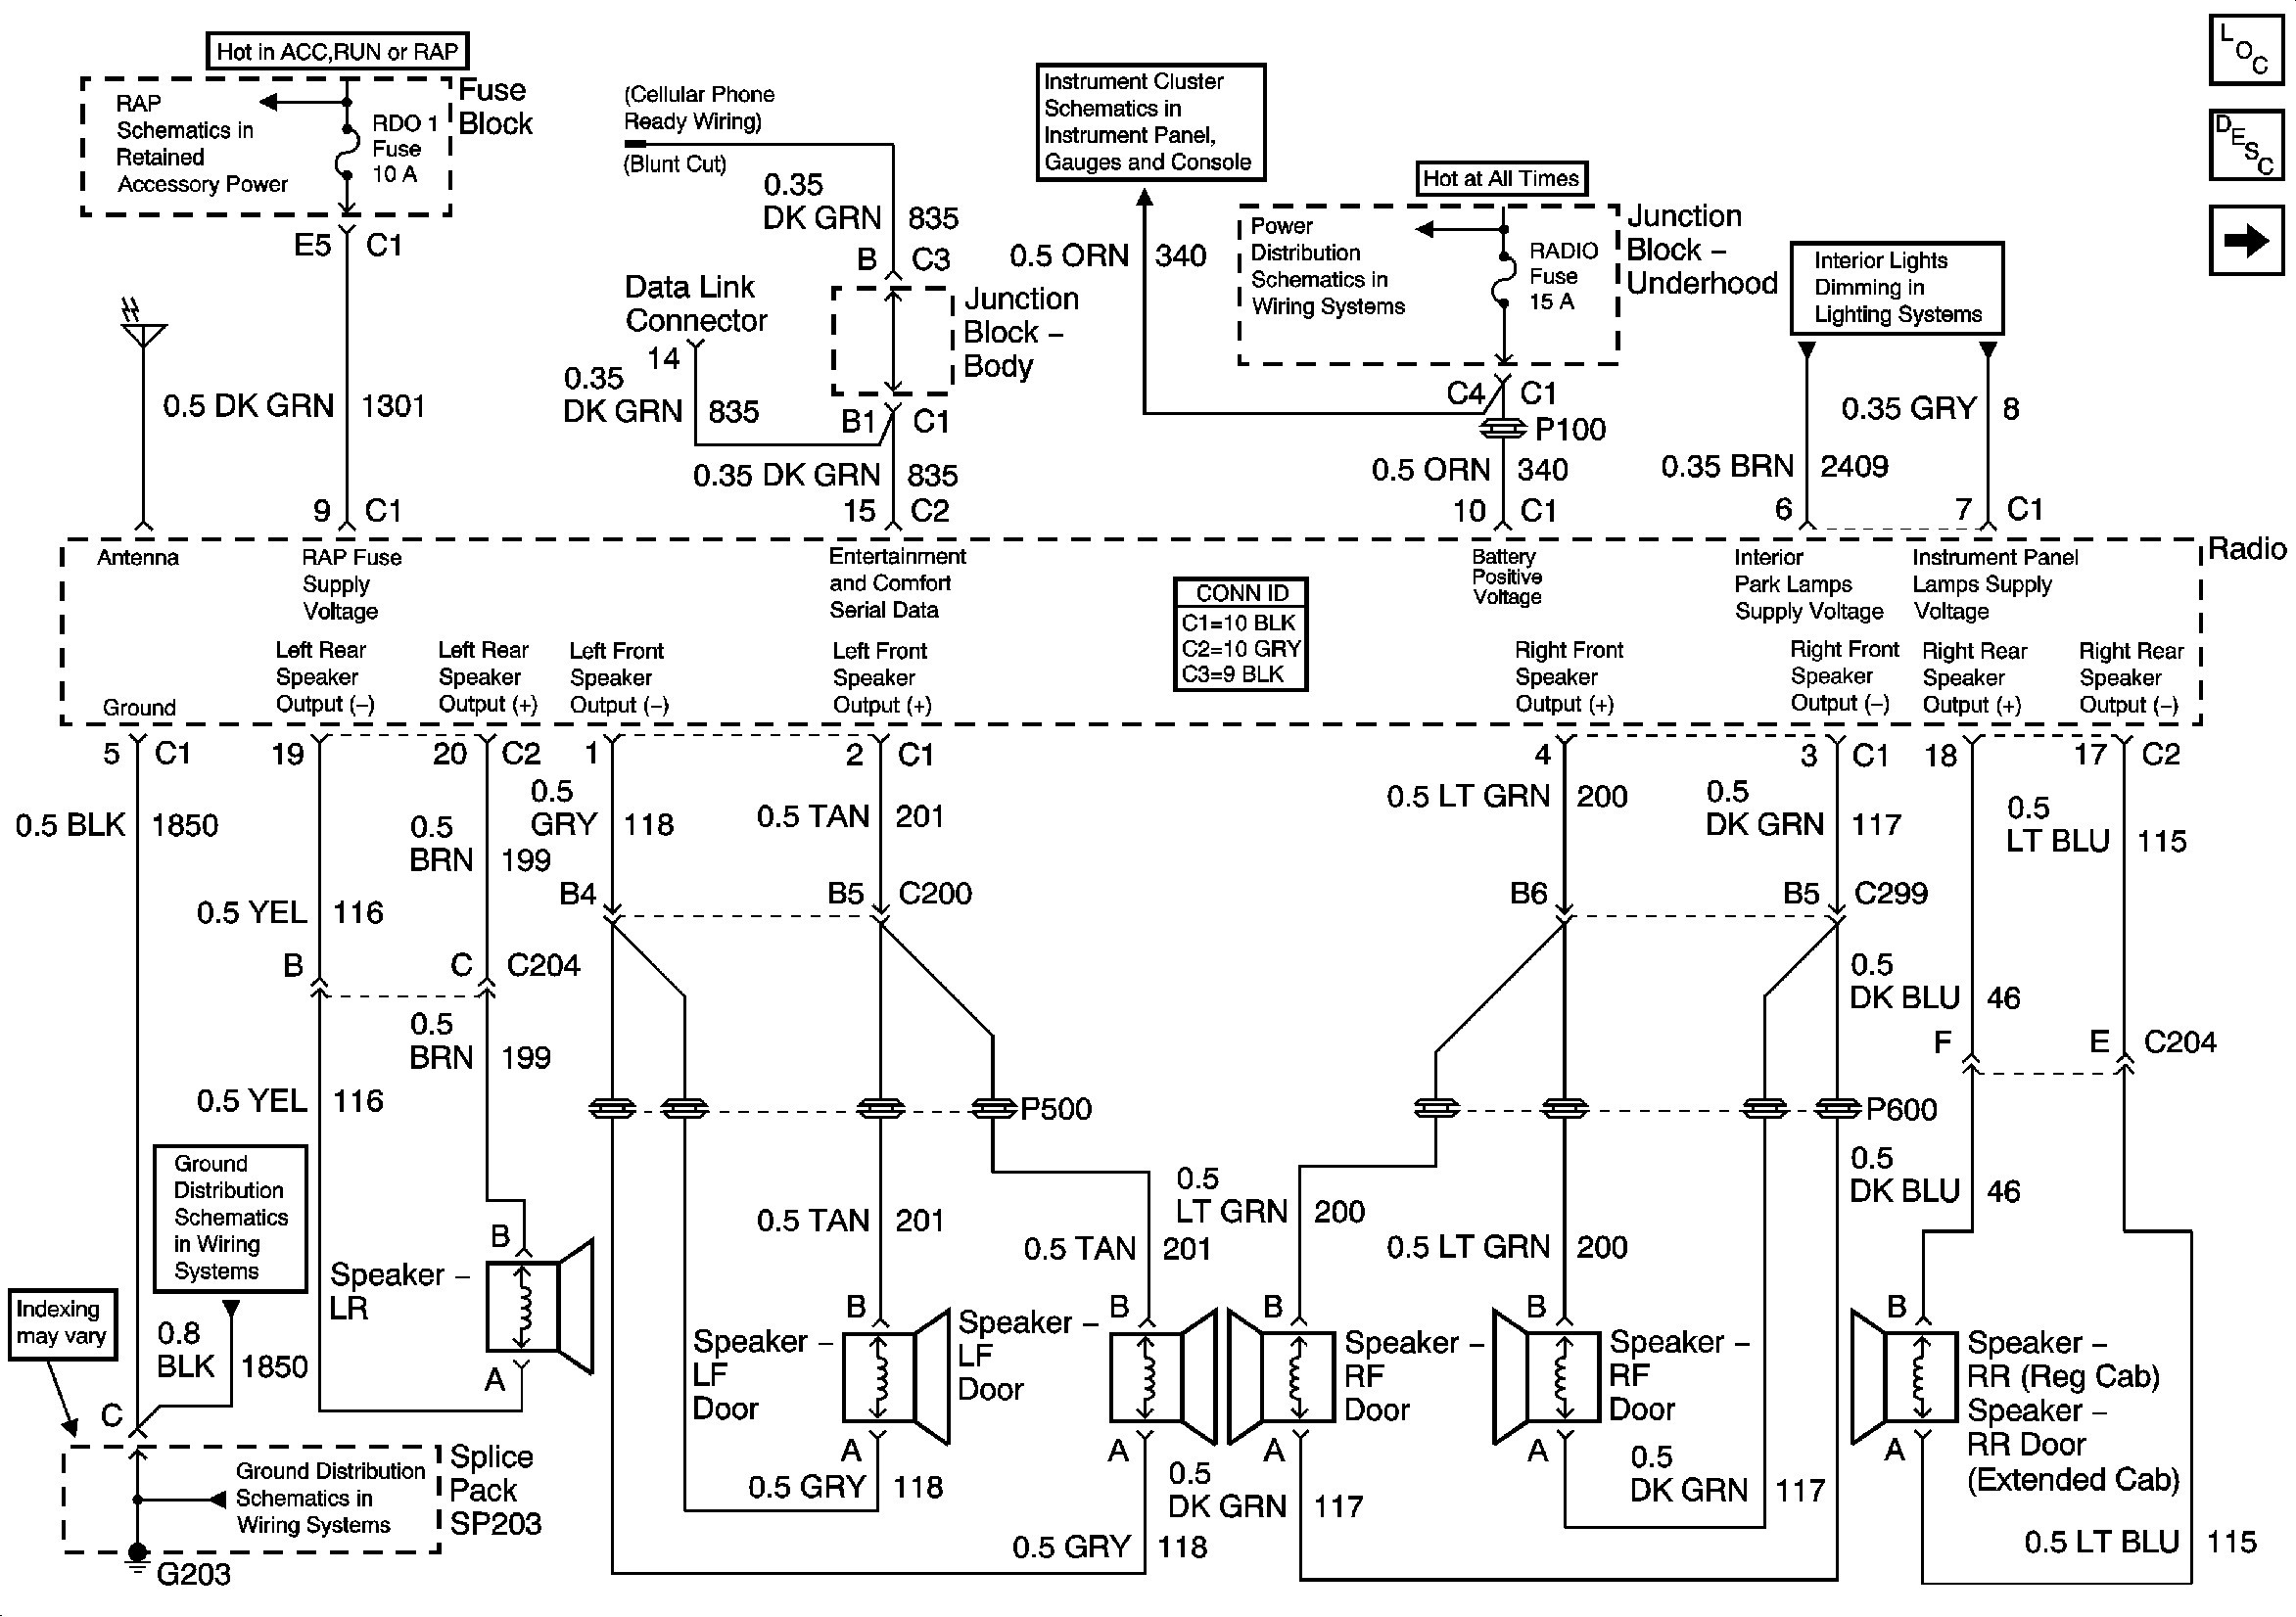 1986 Chevy Truck Radio Wiring Diagram 1970 Gm Radio Wiring Diagram Another Blog About Wiring Diagram • Of 1986 Chevy Truck Radio Wiring Diagram